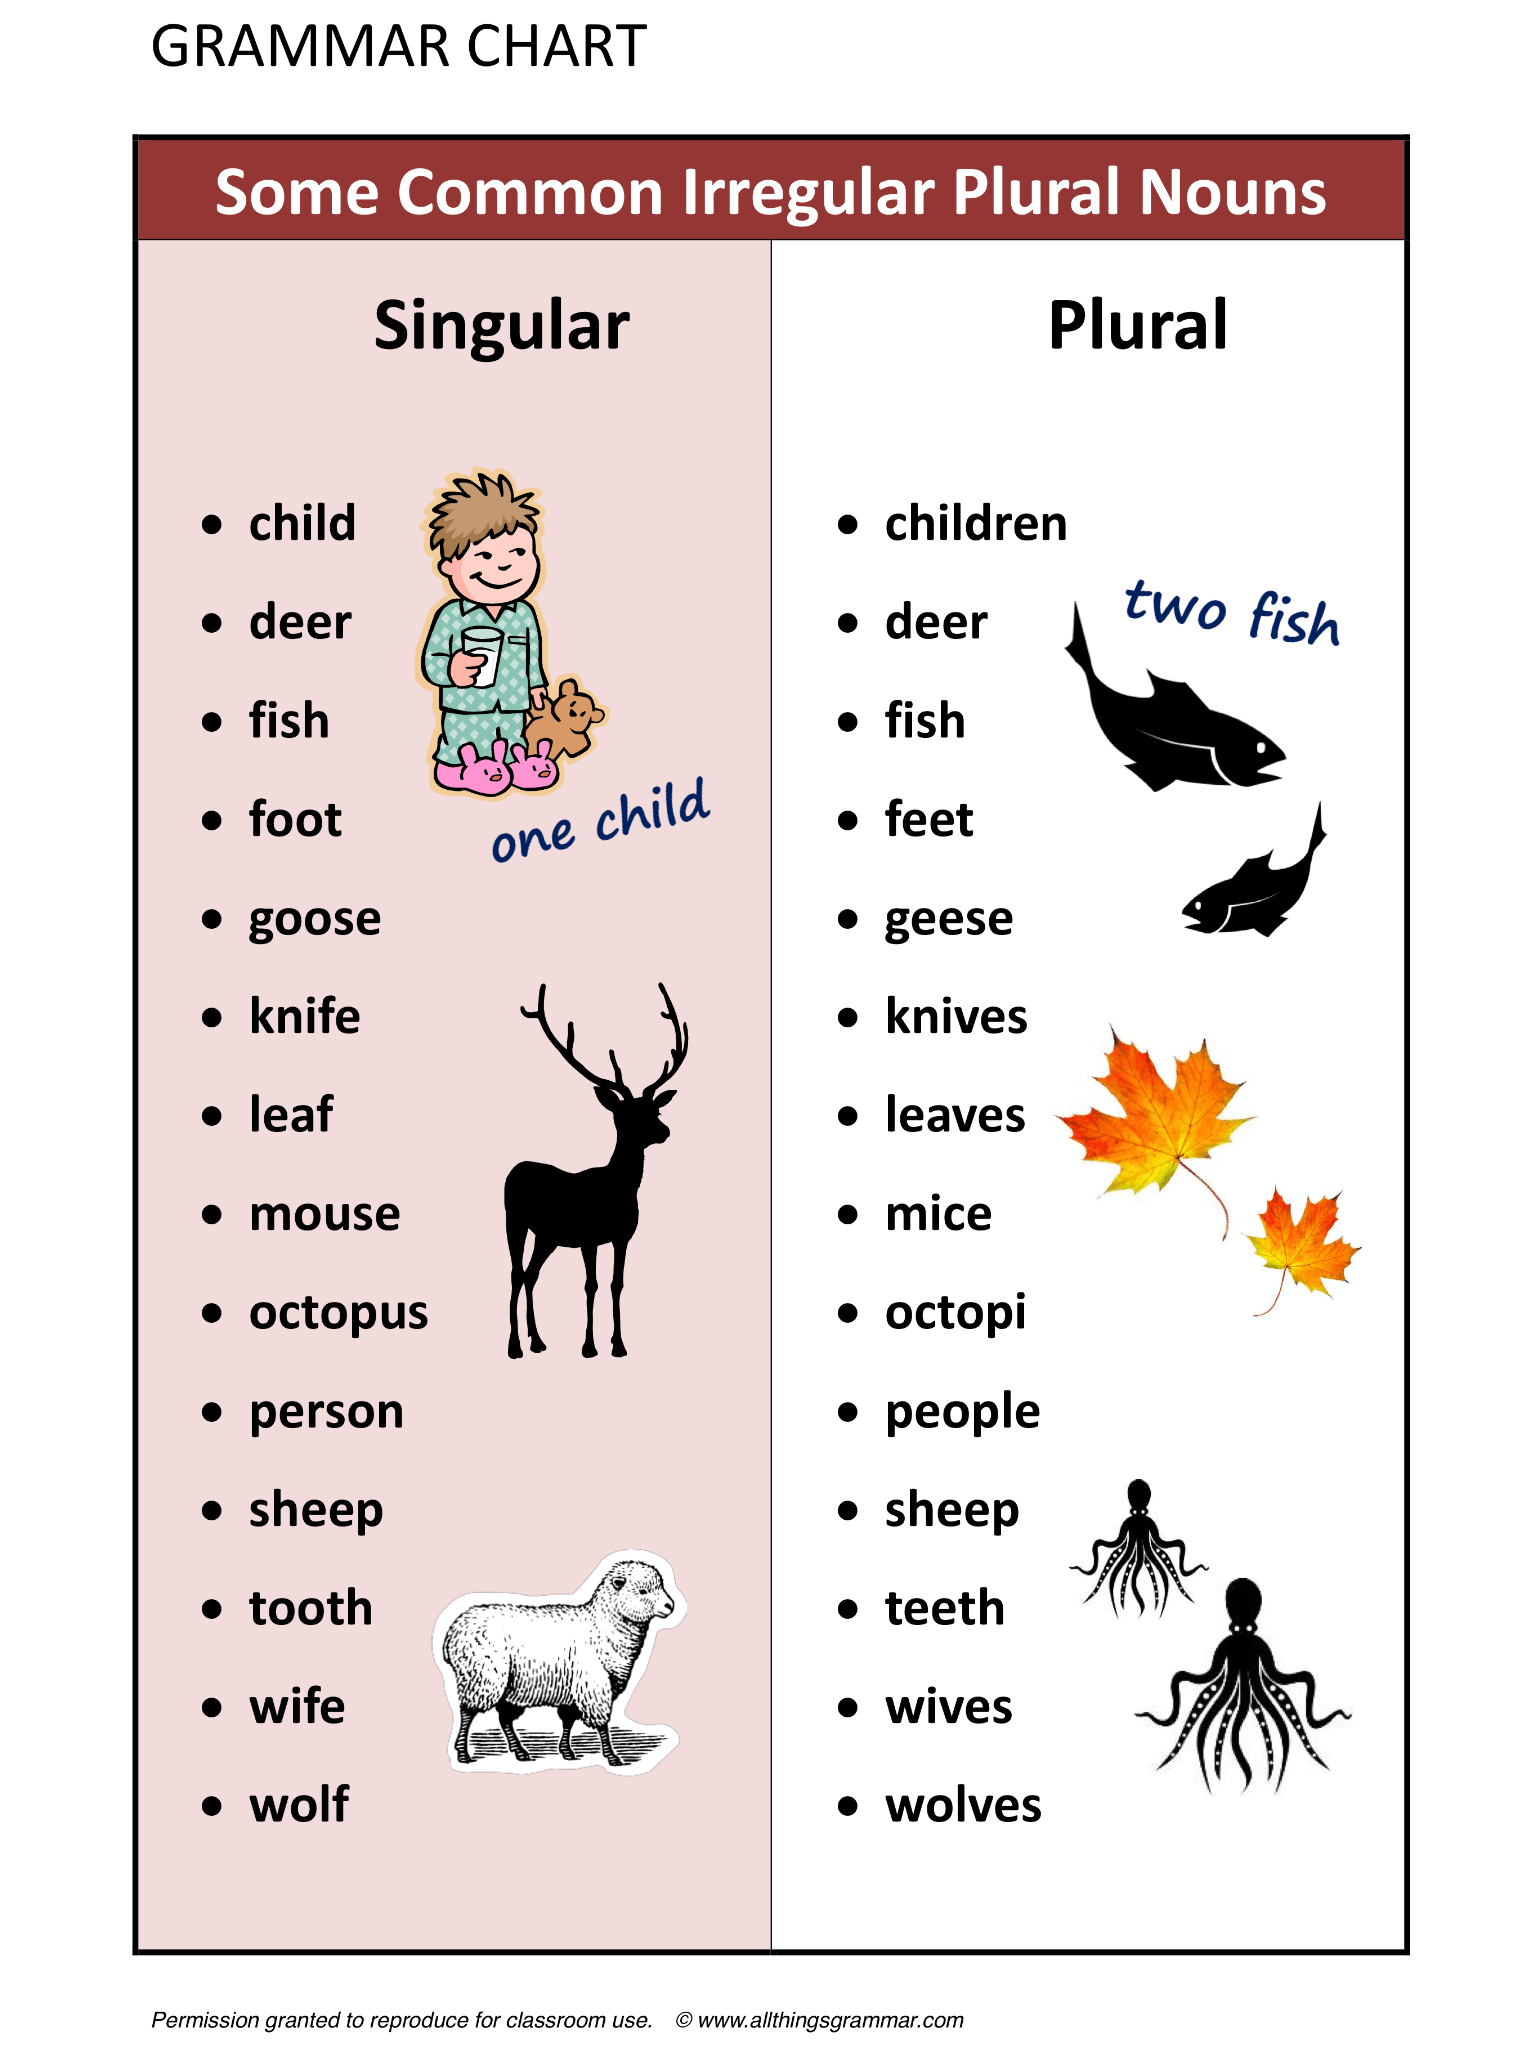 Some Common Irregular Plural Nouns